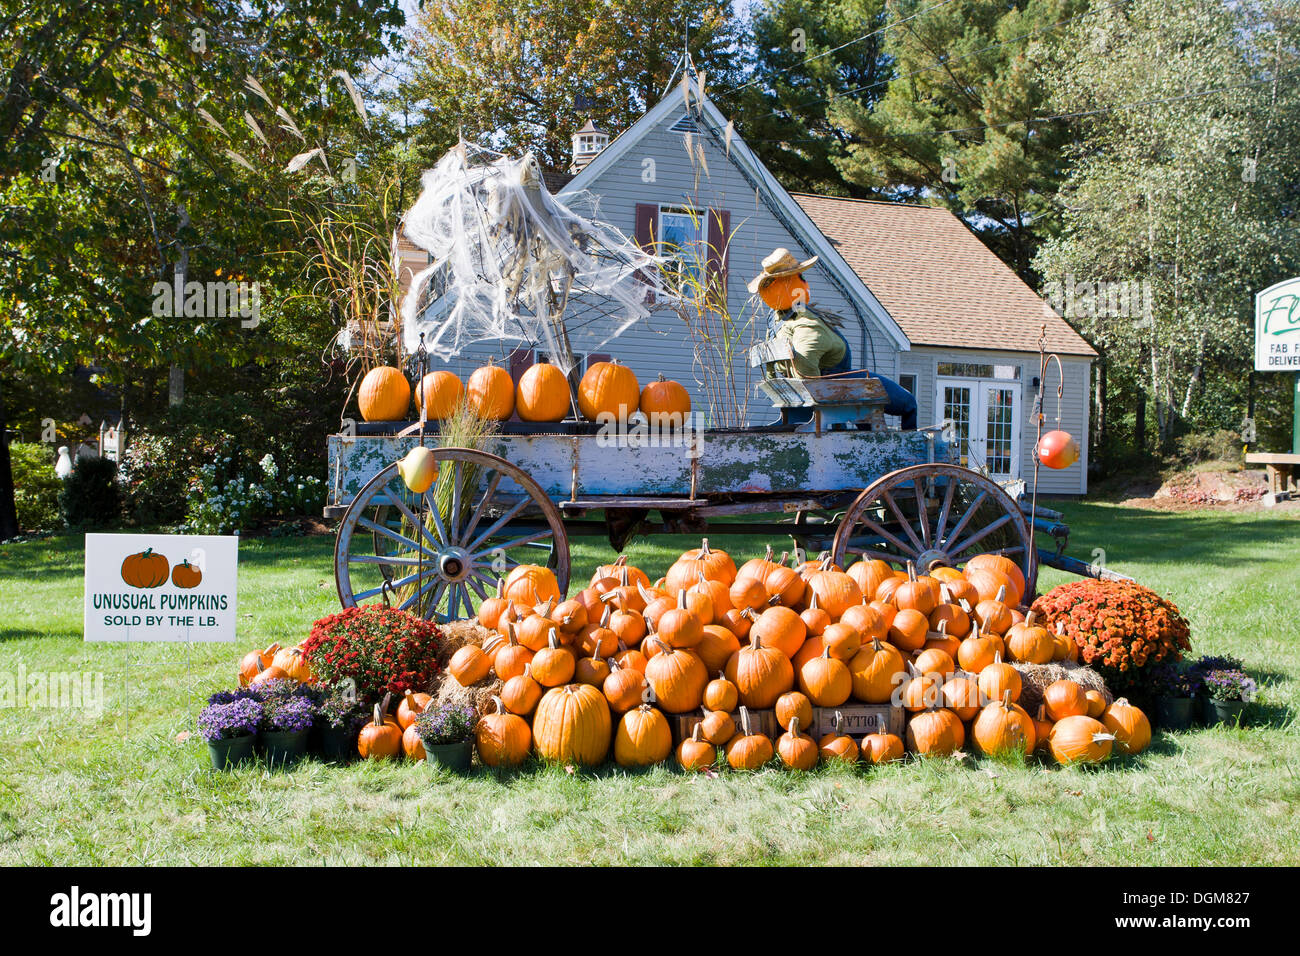 Maine Halloween Maine New England Photos & Maine Halloween Maine New ...